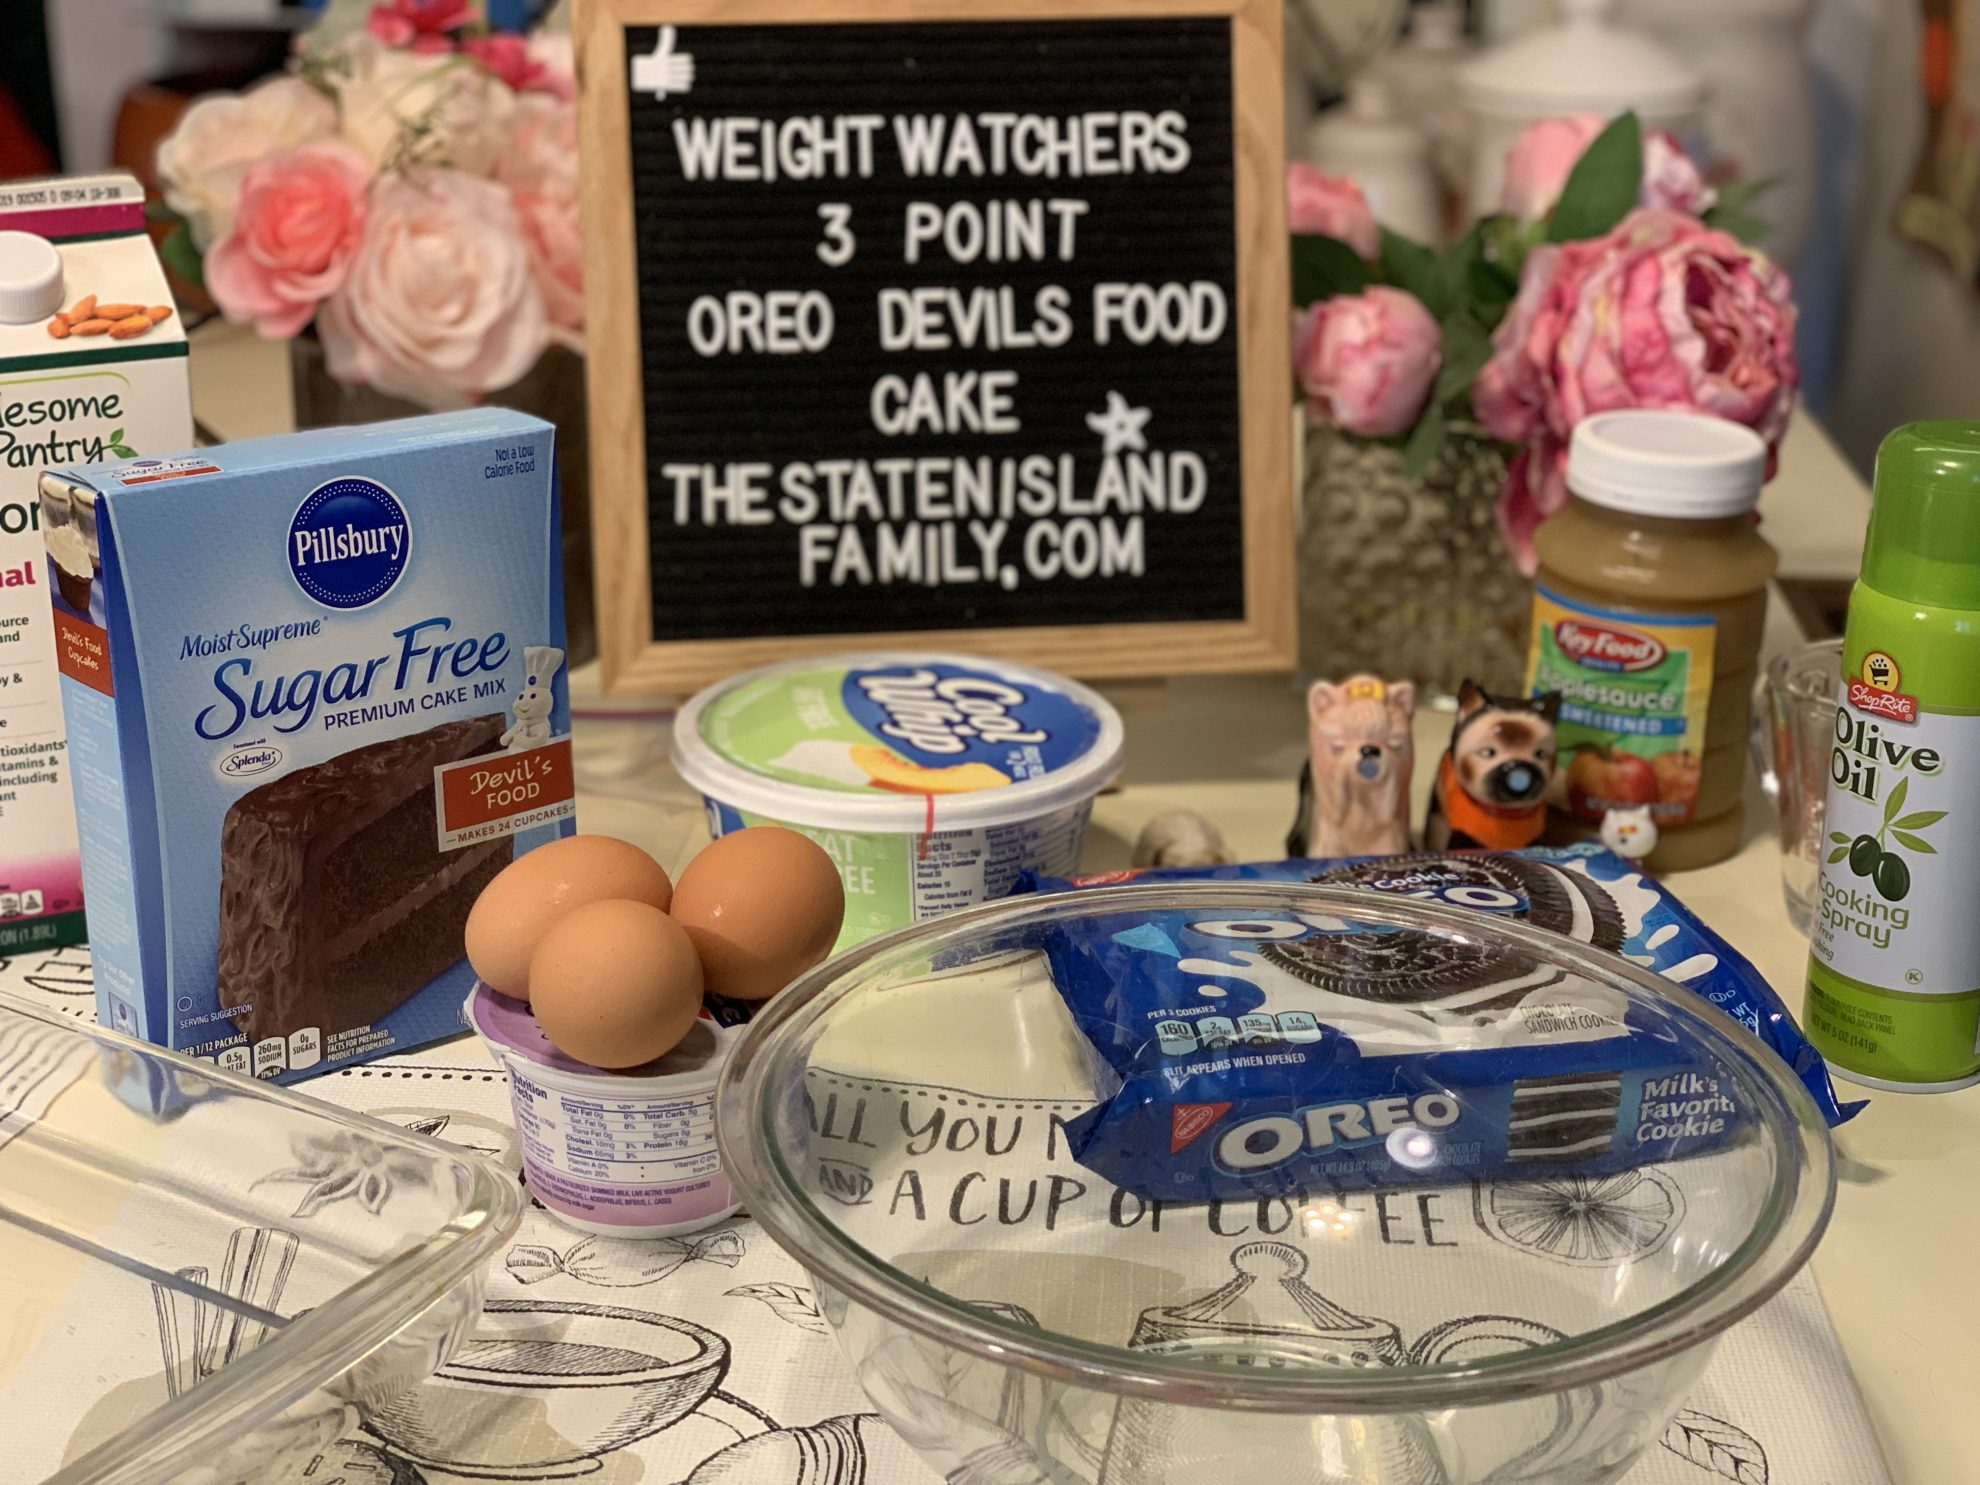 Weight Watchers Oreo Devil's Food Cake - just 3 points per serving